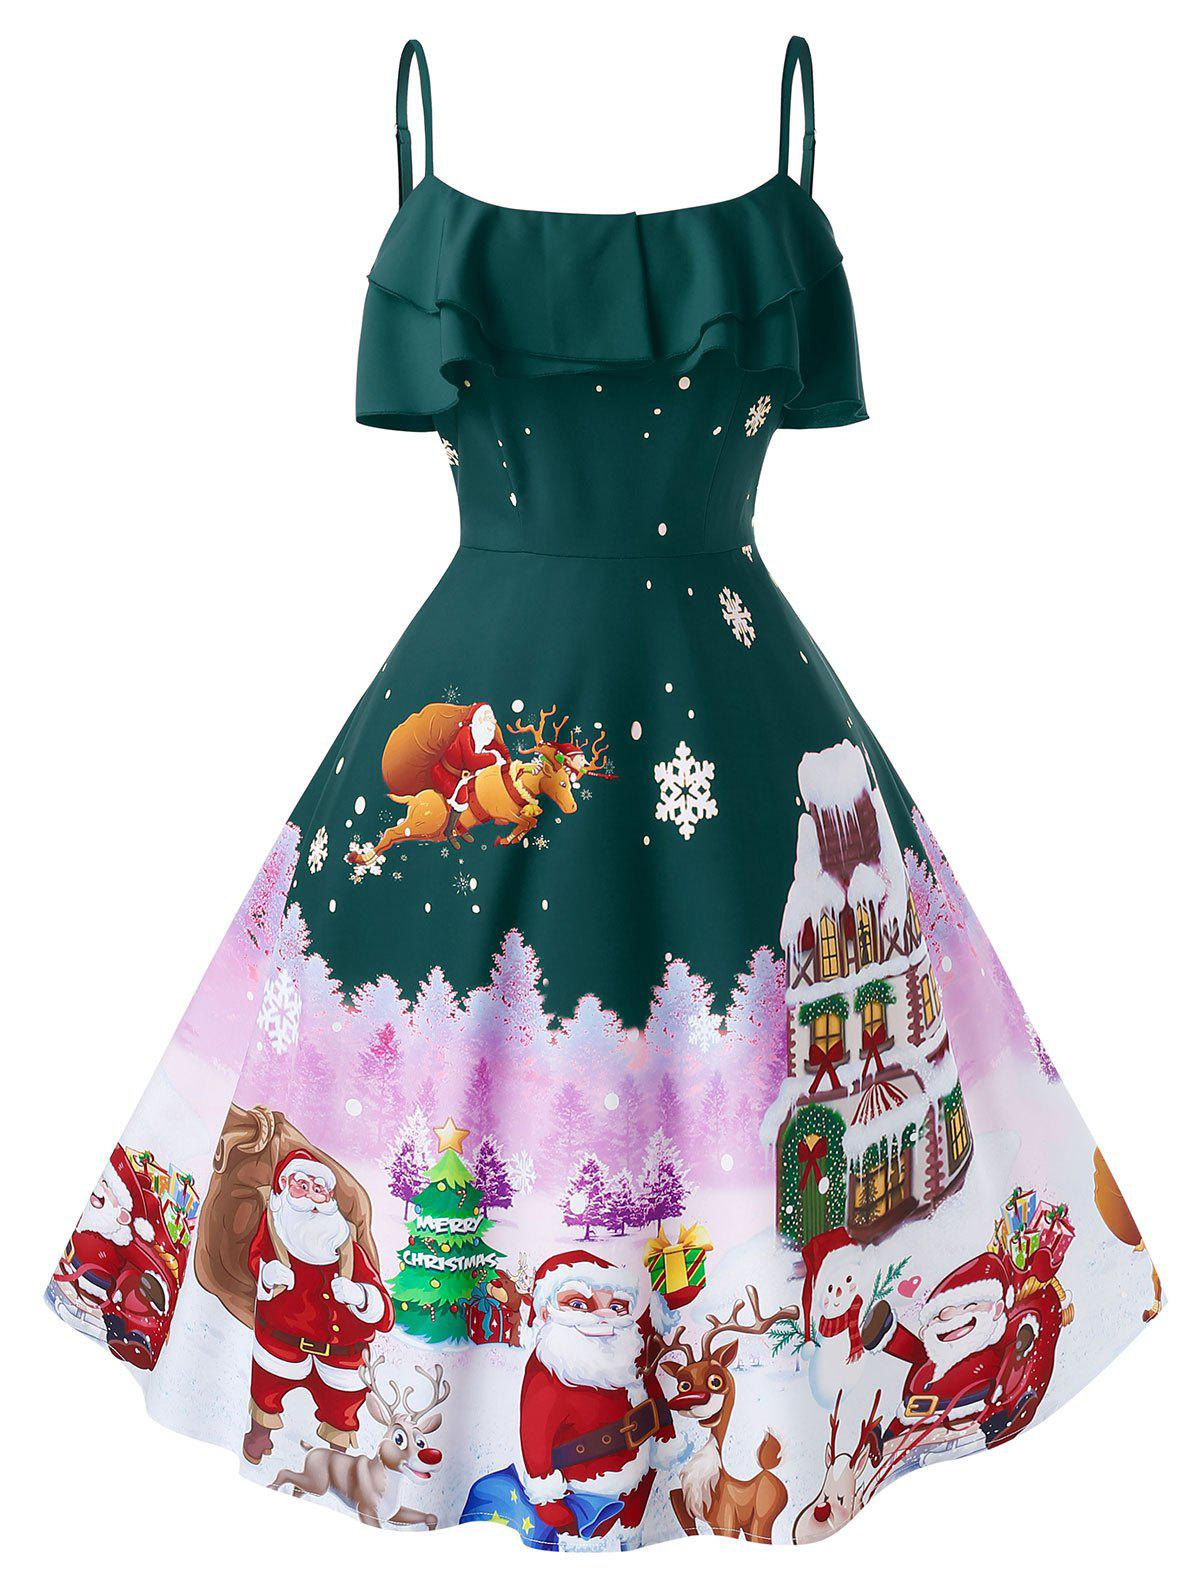 Plus Size Christmas Vintage Printed Pin Up Dress - DARK FOREST GREEN 4X